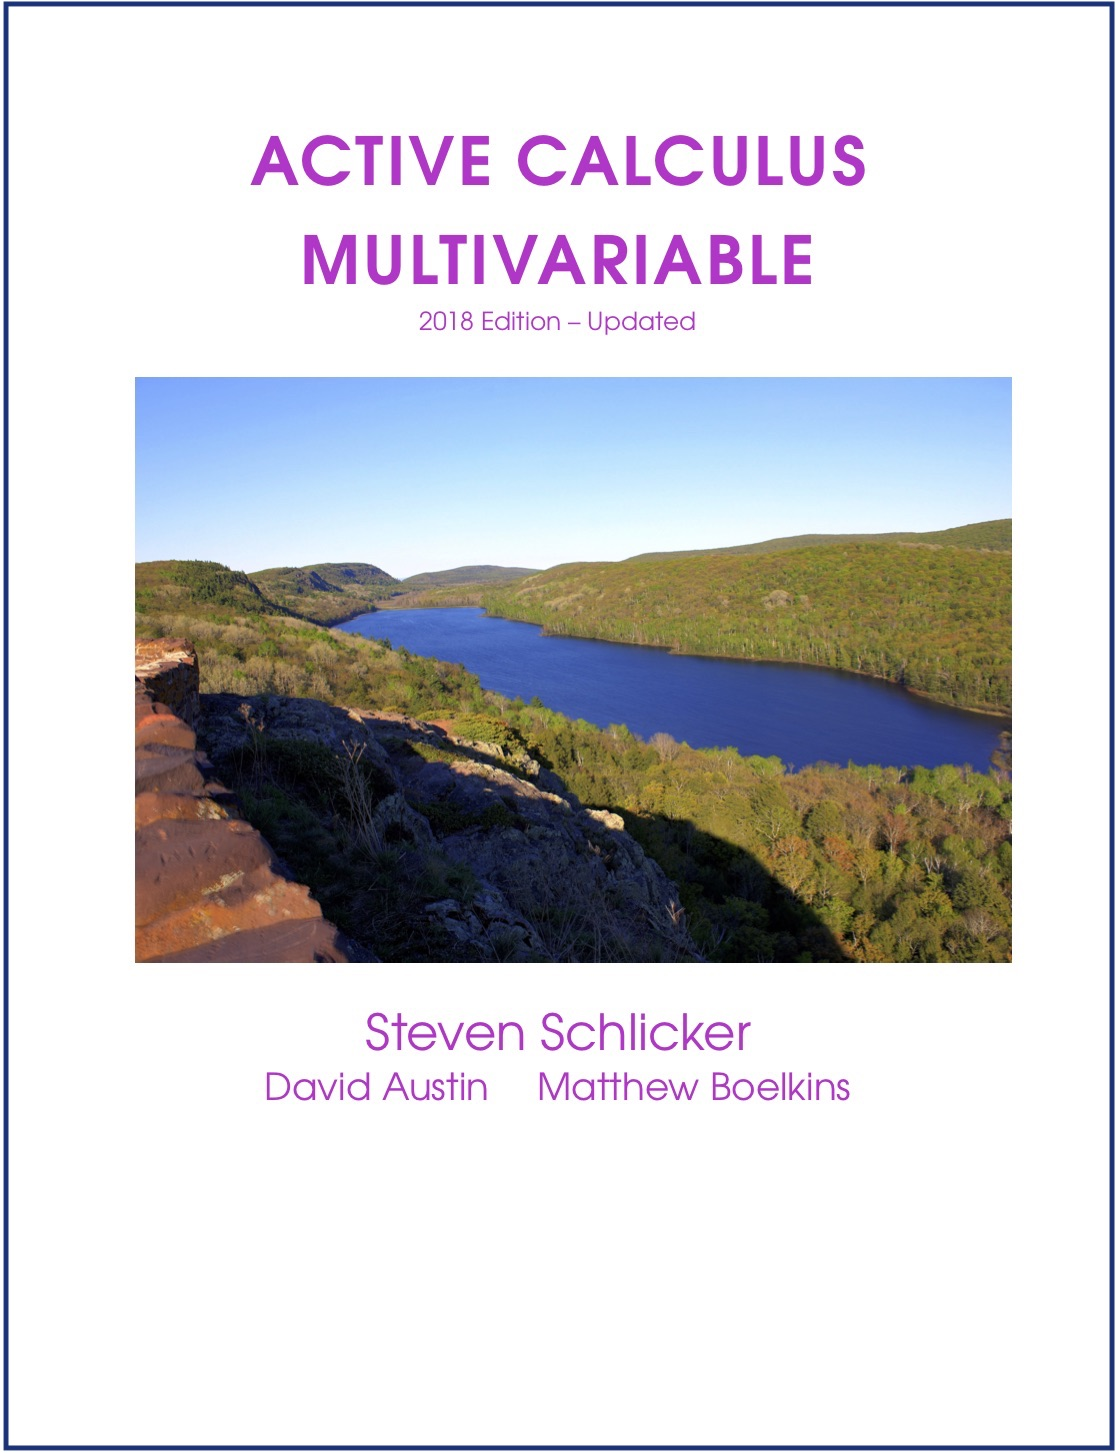 Active Calculus Multivariable Updated 2018 Edition